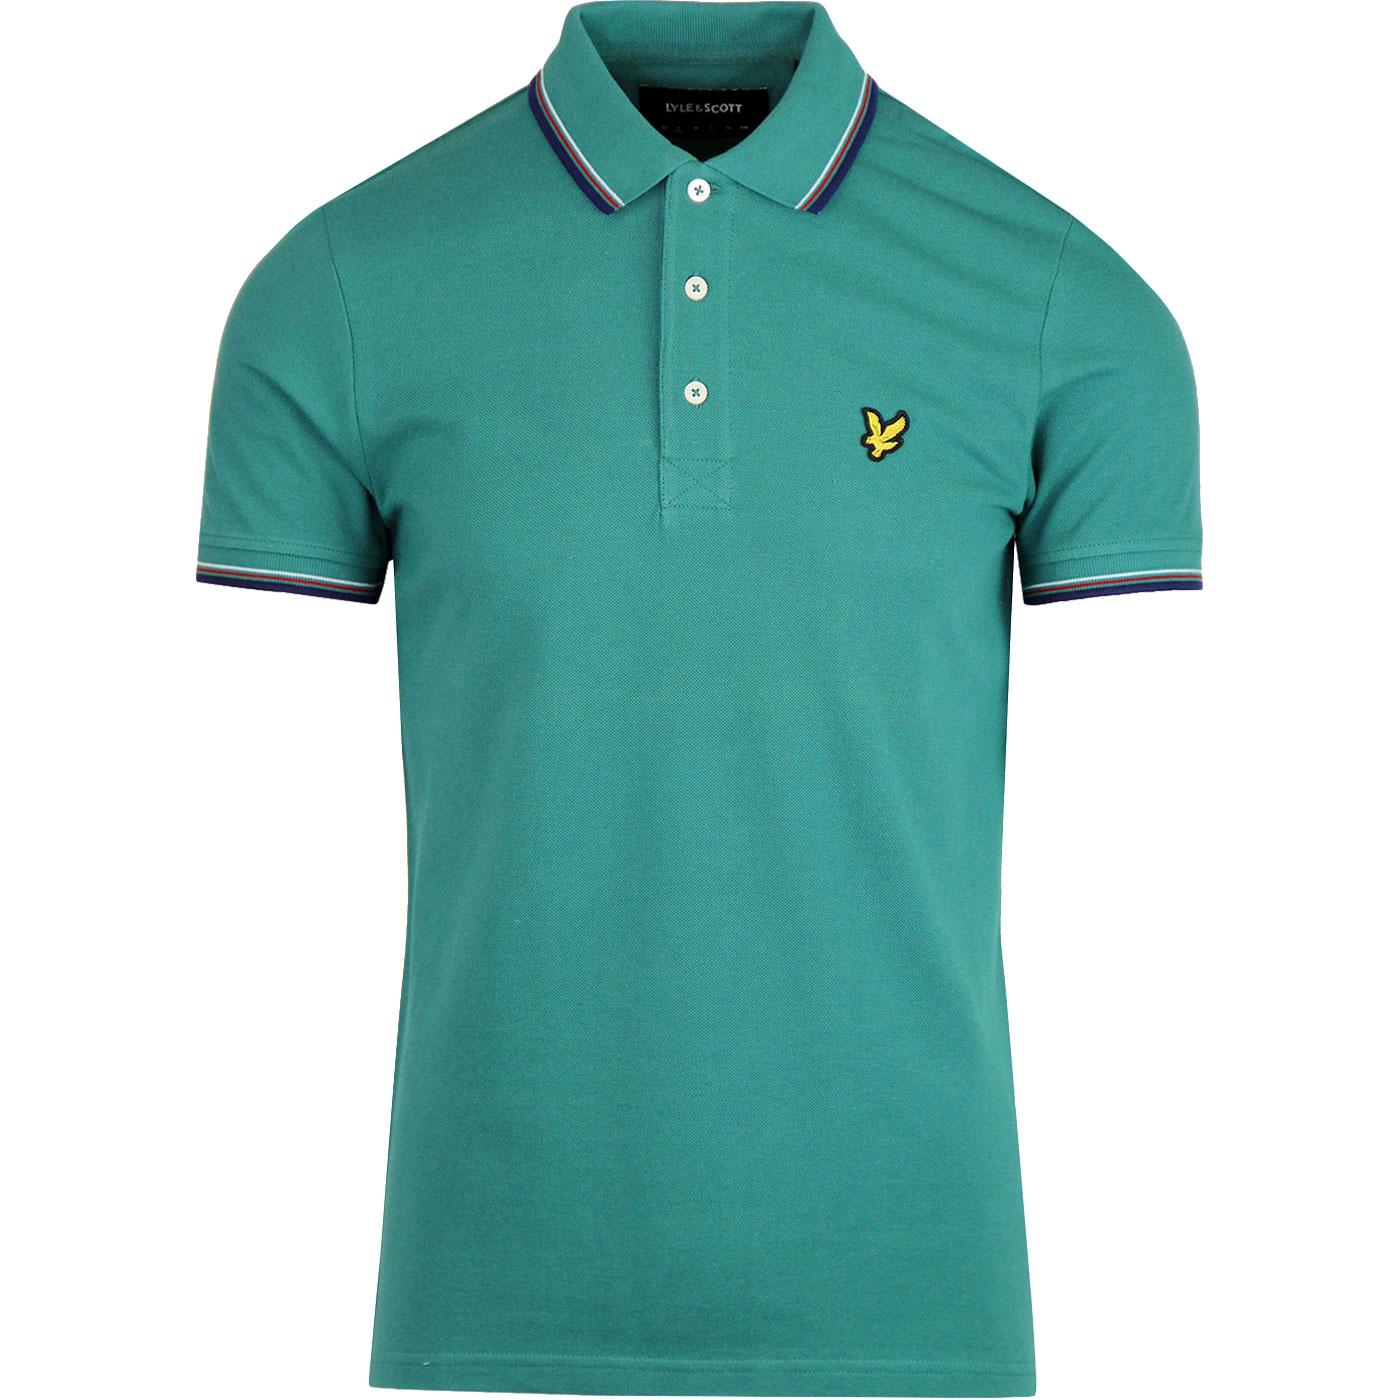 LYLE & SCOTT Men's Tipped Mod Pique Polo - GREEN